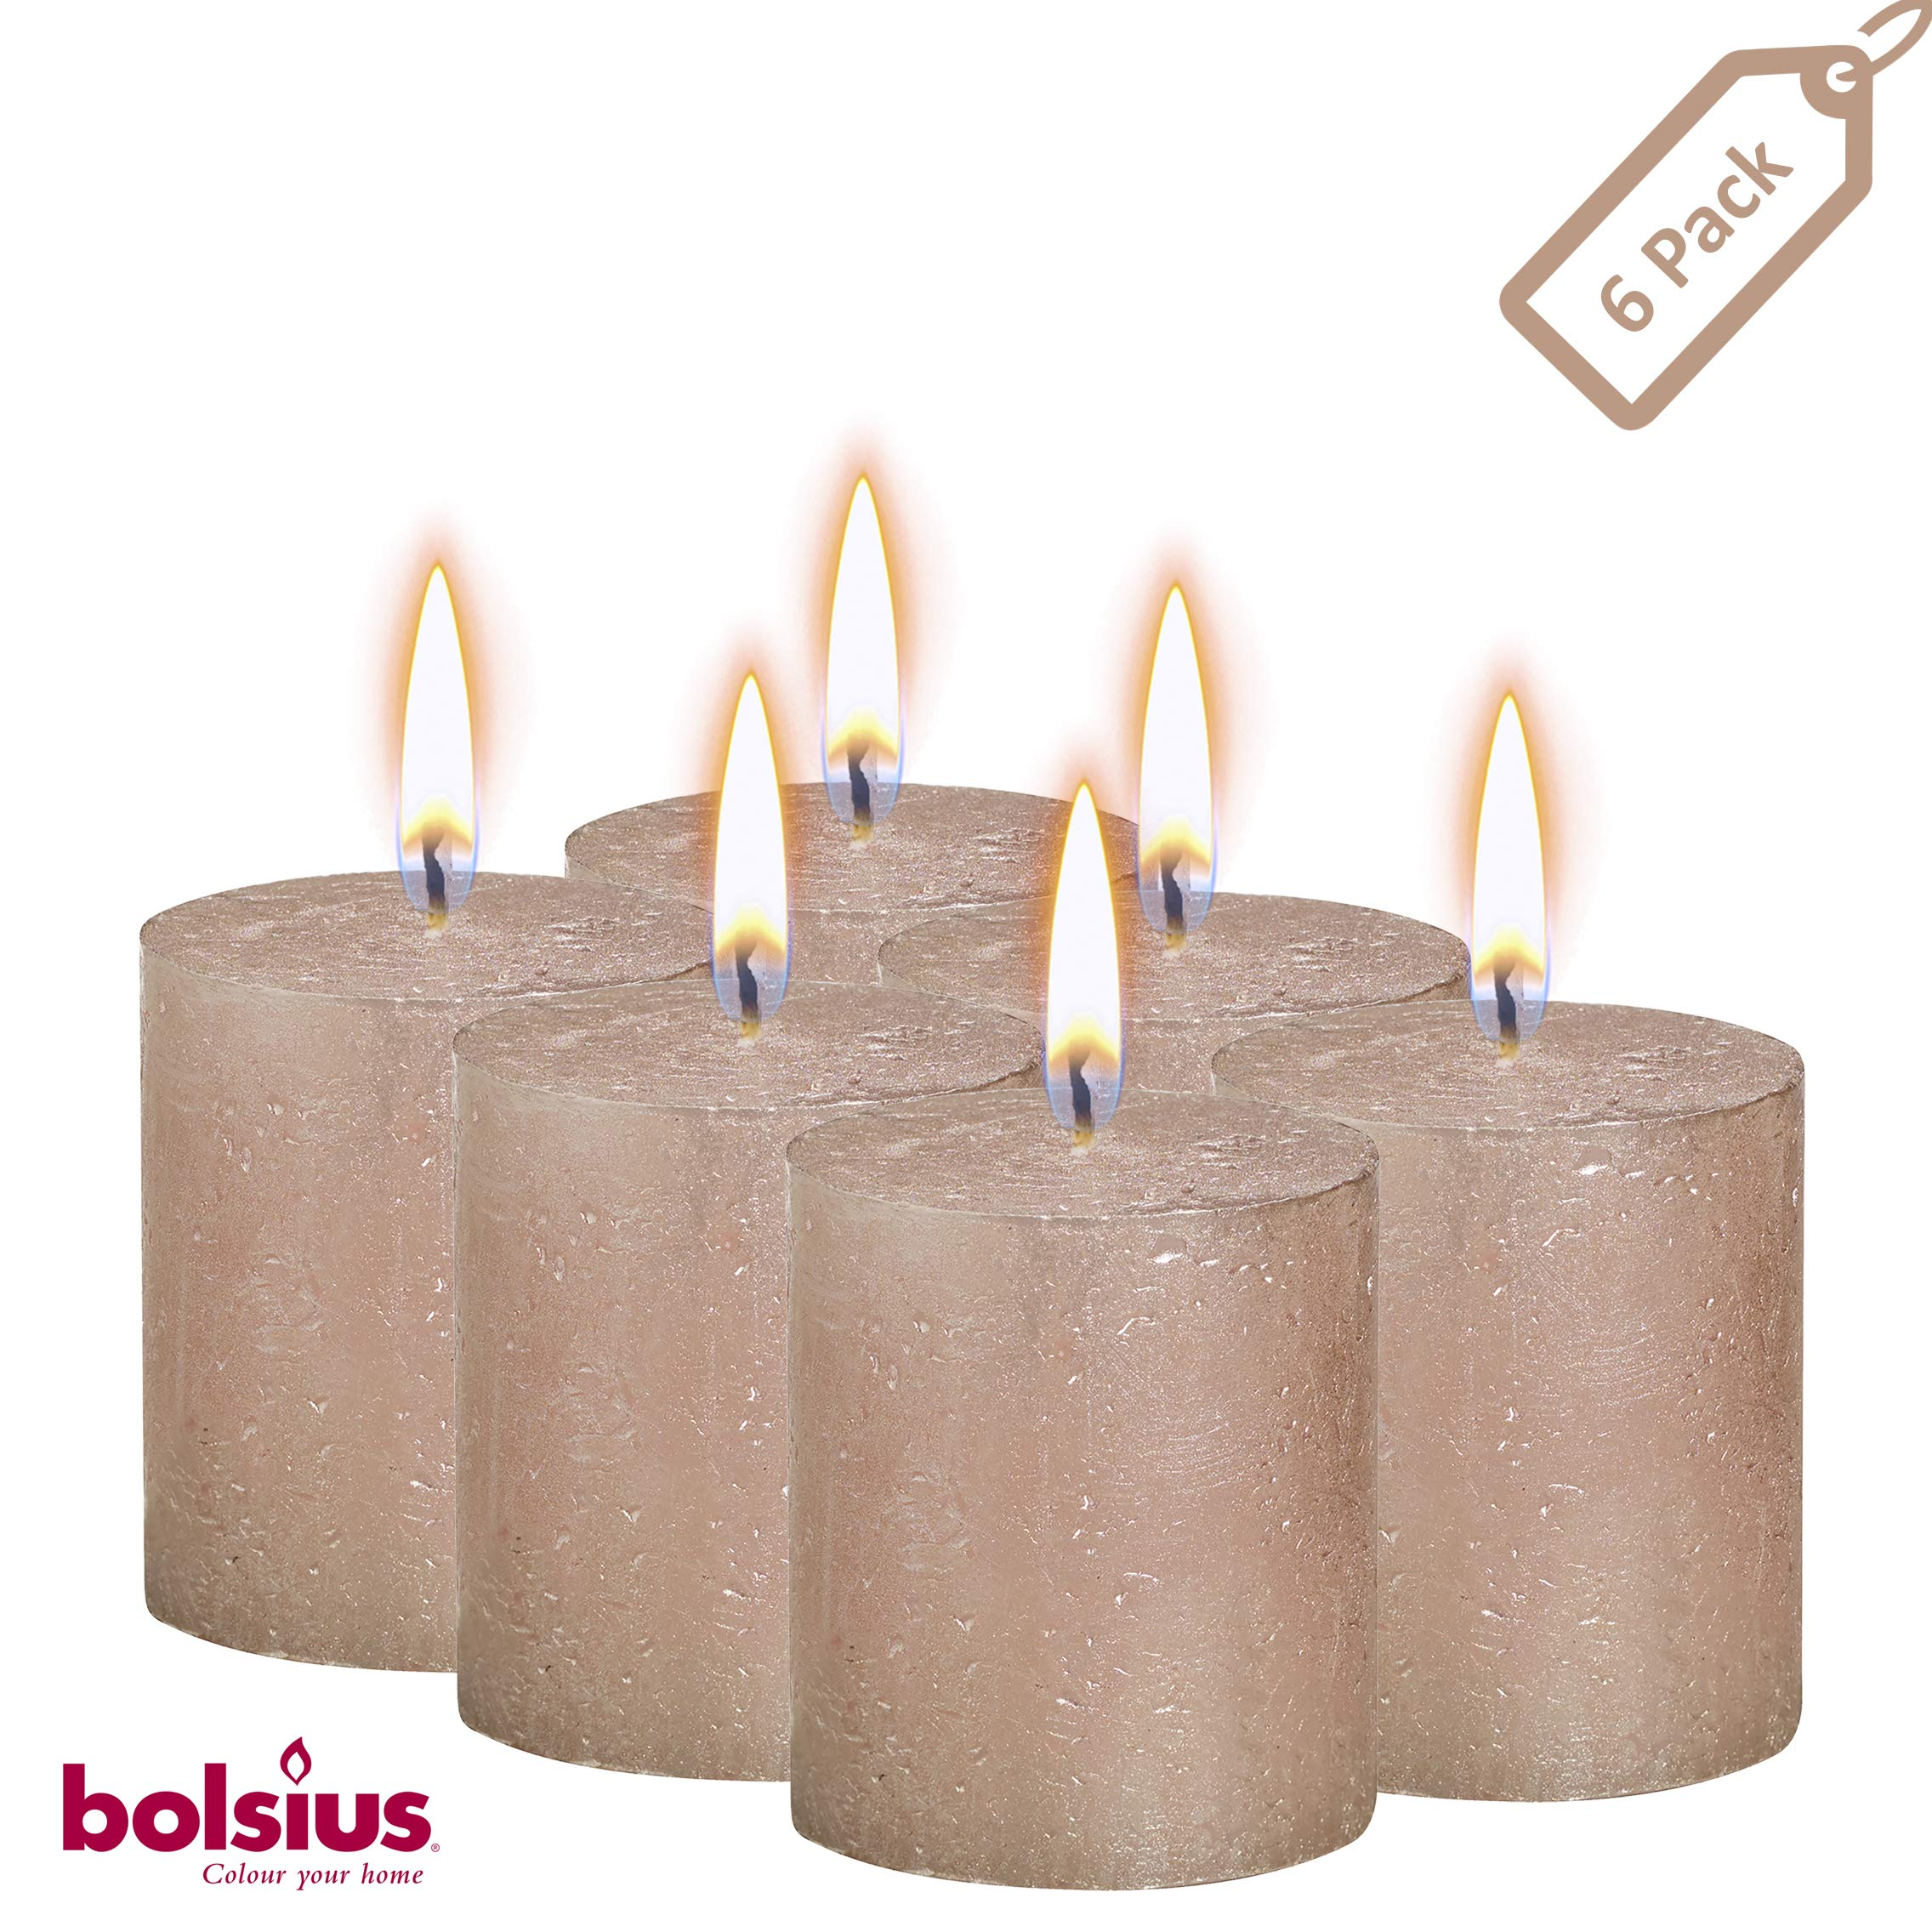 BOLSIUS Rustic Full Metallic Rose Gold Candles – Set of 6 Unscented Pillar Candles – Rose Gold Candles with a Full Metallic Coat – Slow Burning – Perfect Décor Candle – 80/68m 3.25X 2.75 Inches by BOLSIUS (Image #1)